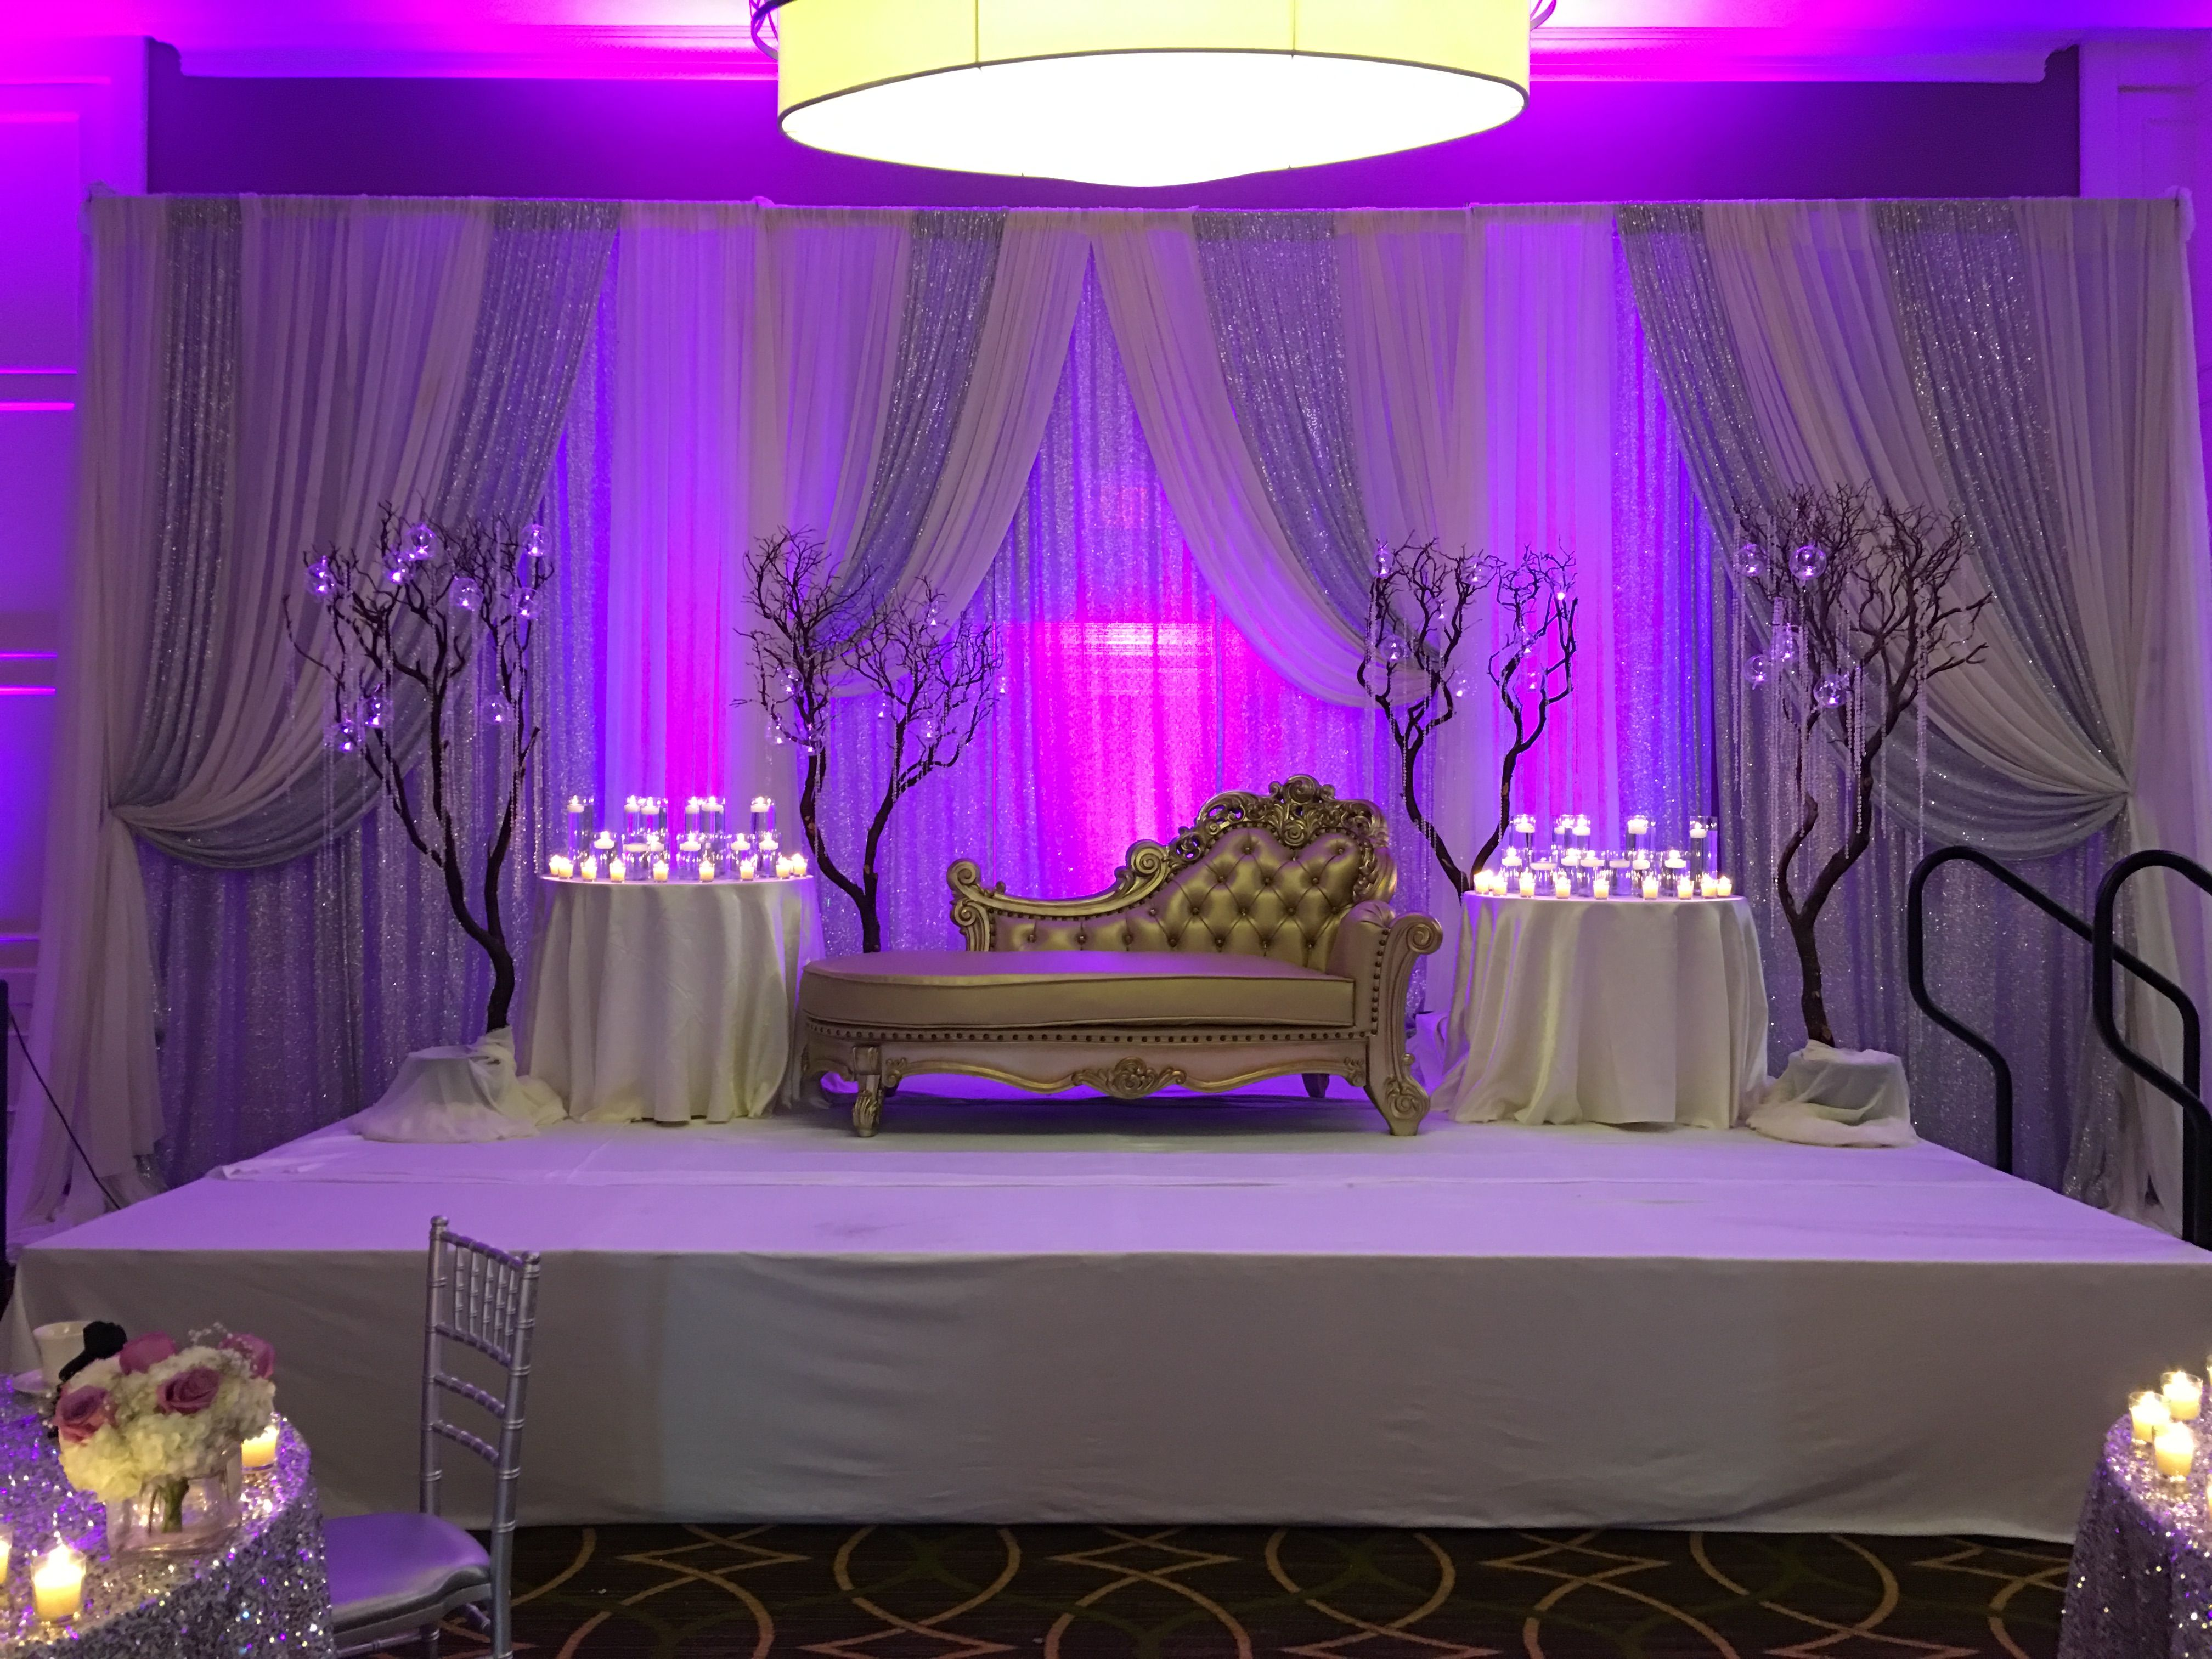 wedding stage decoration pics%0A Backdrop  u     Stage D  cor  indianweddings  indiandecor  indiancaterers   annarborweddings  Sheraton  starwoodhotels